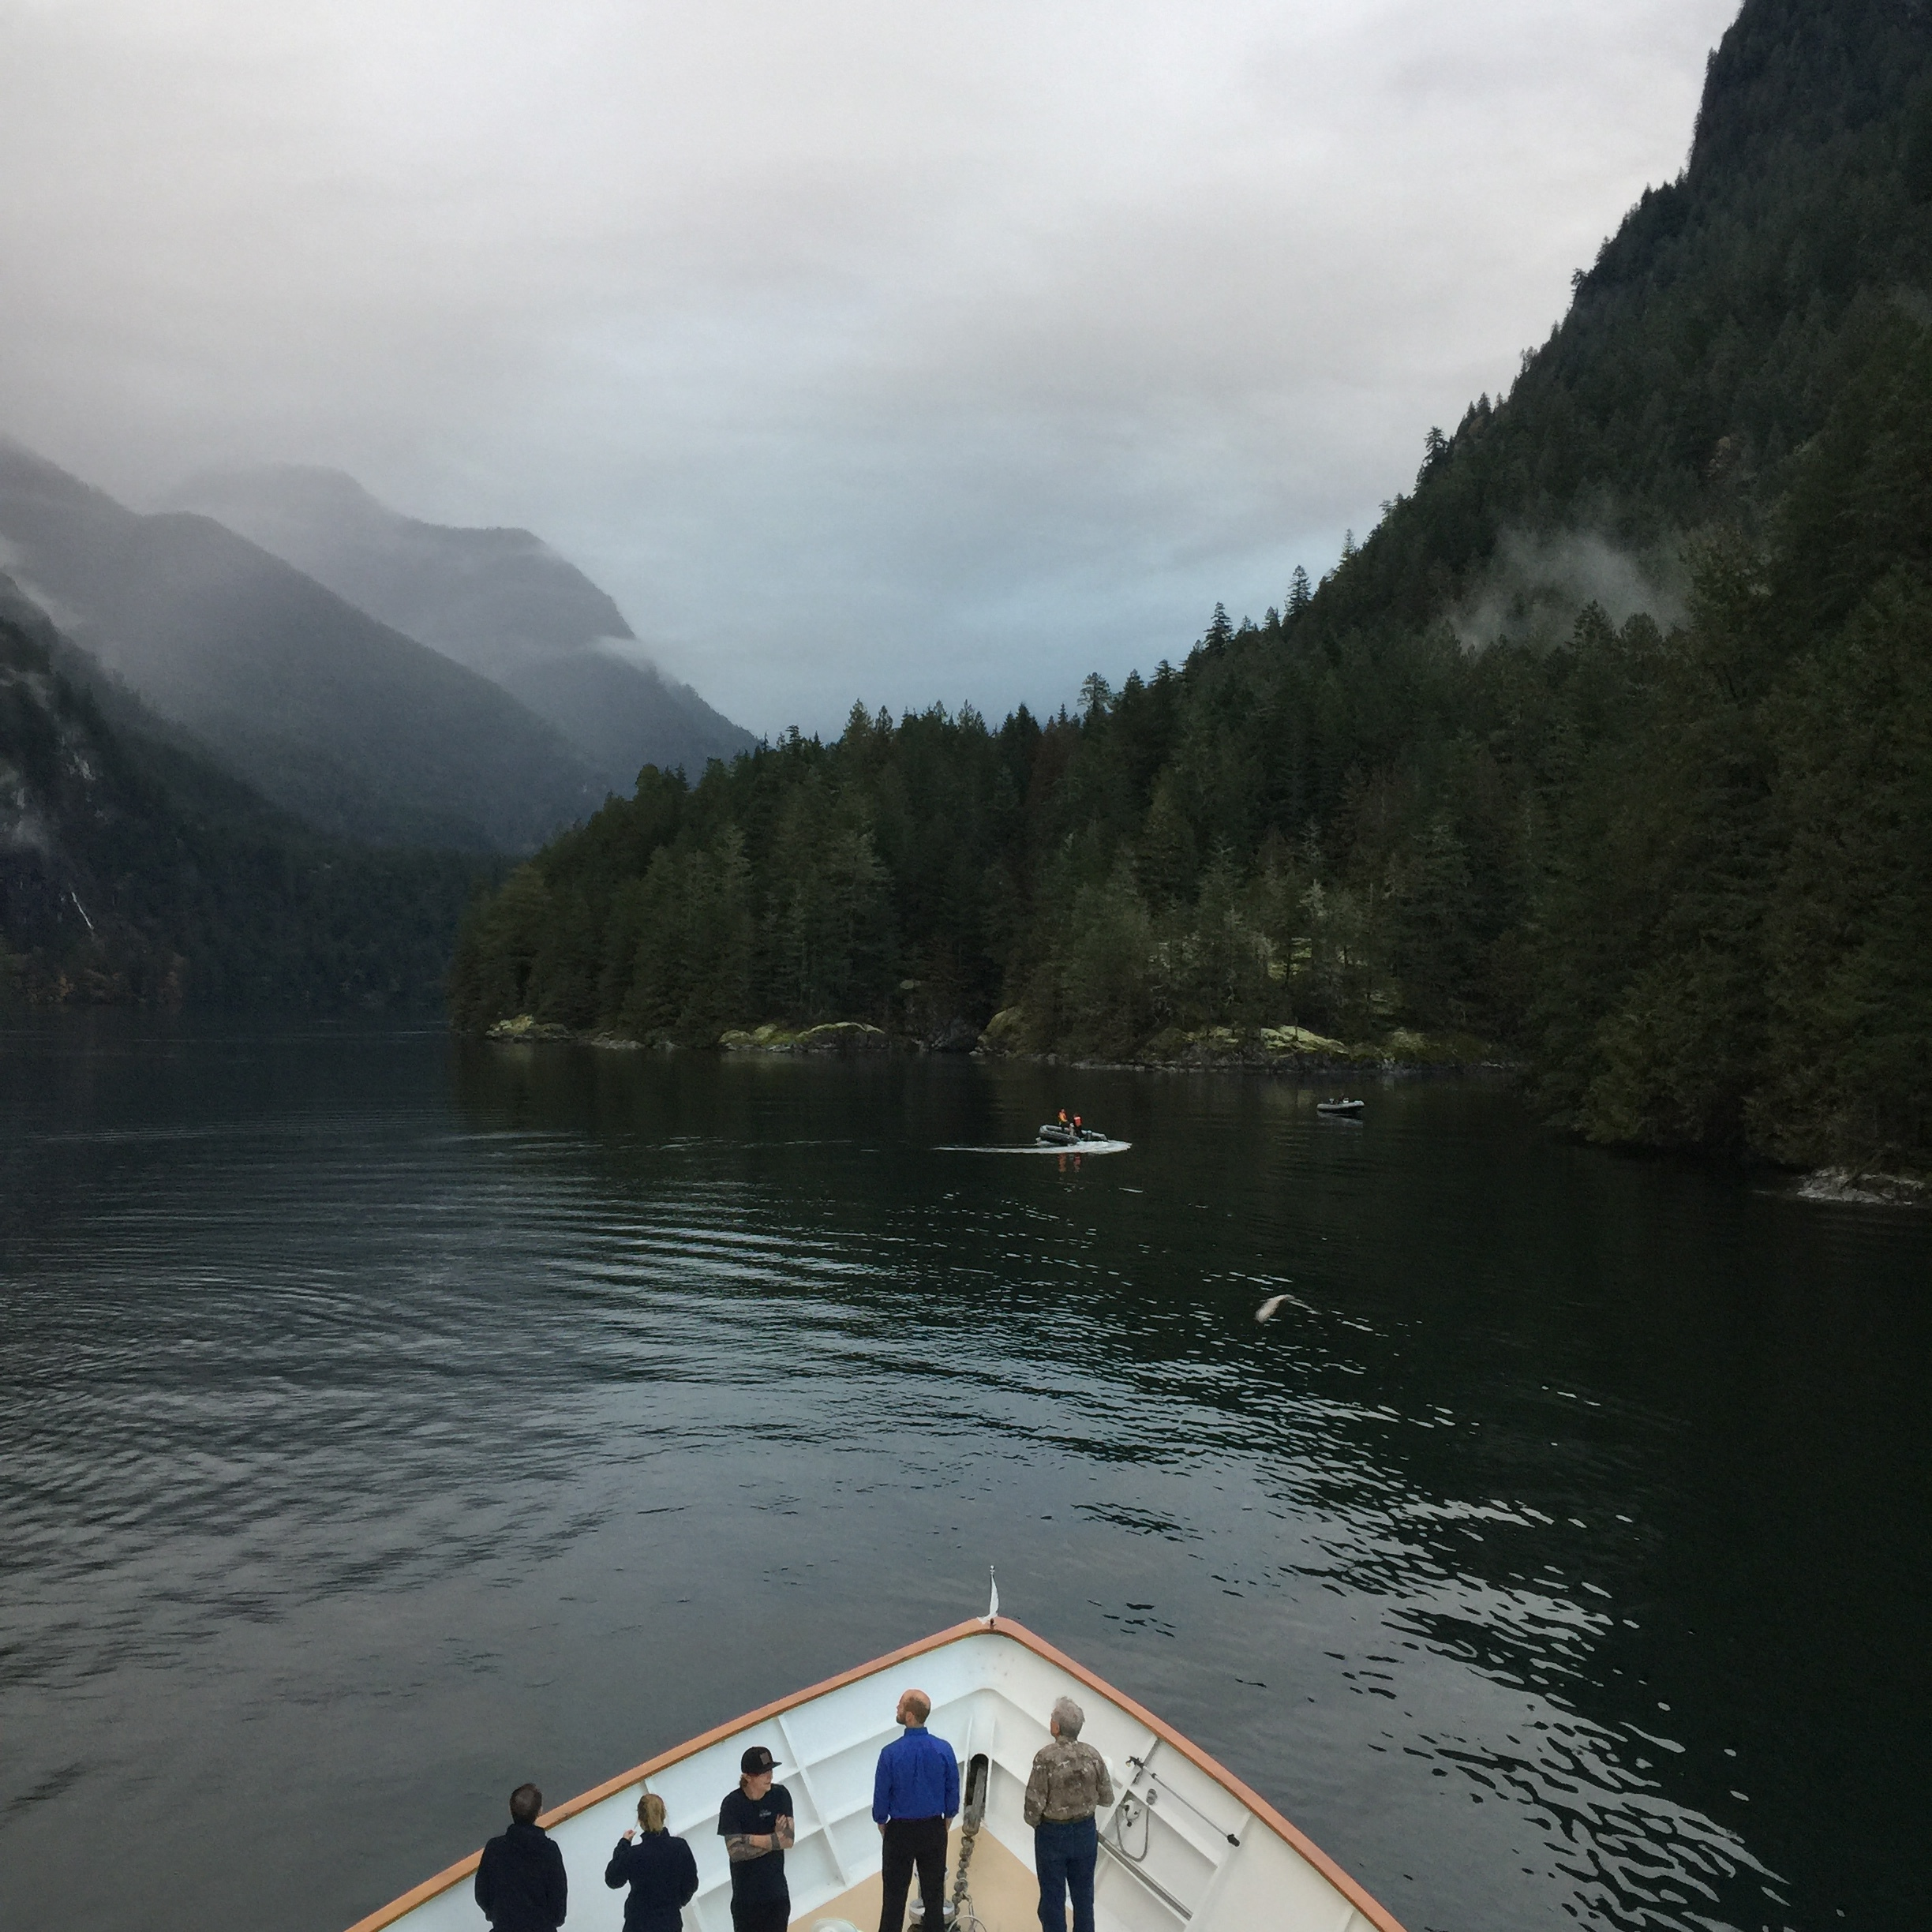 The Captain and Crew kept us safe while navigating the tides and narrow entrance to the Princess Louisa Inlet.